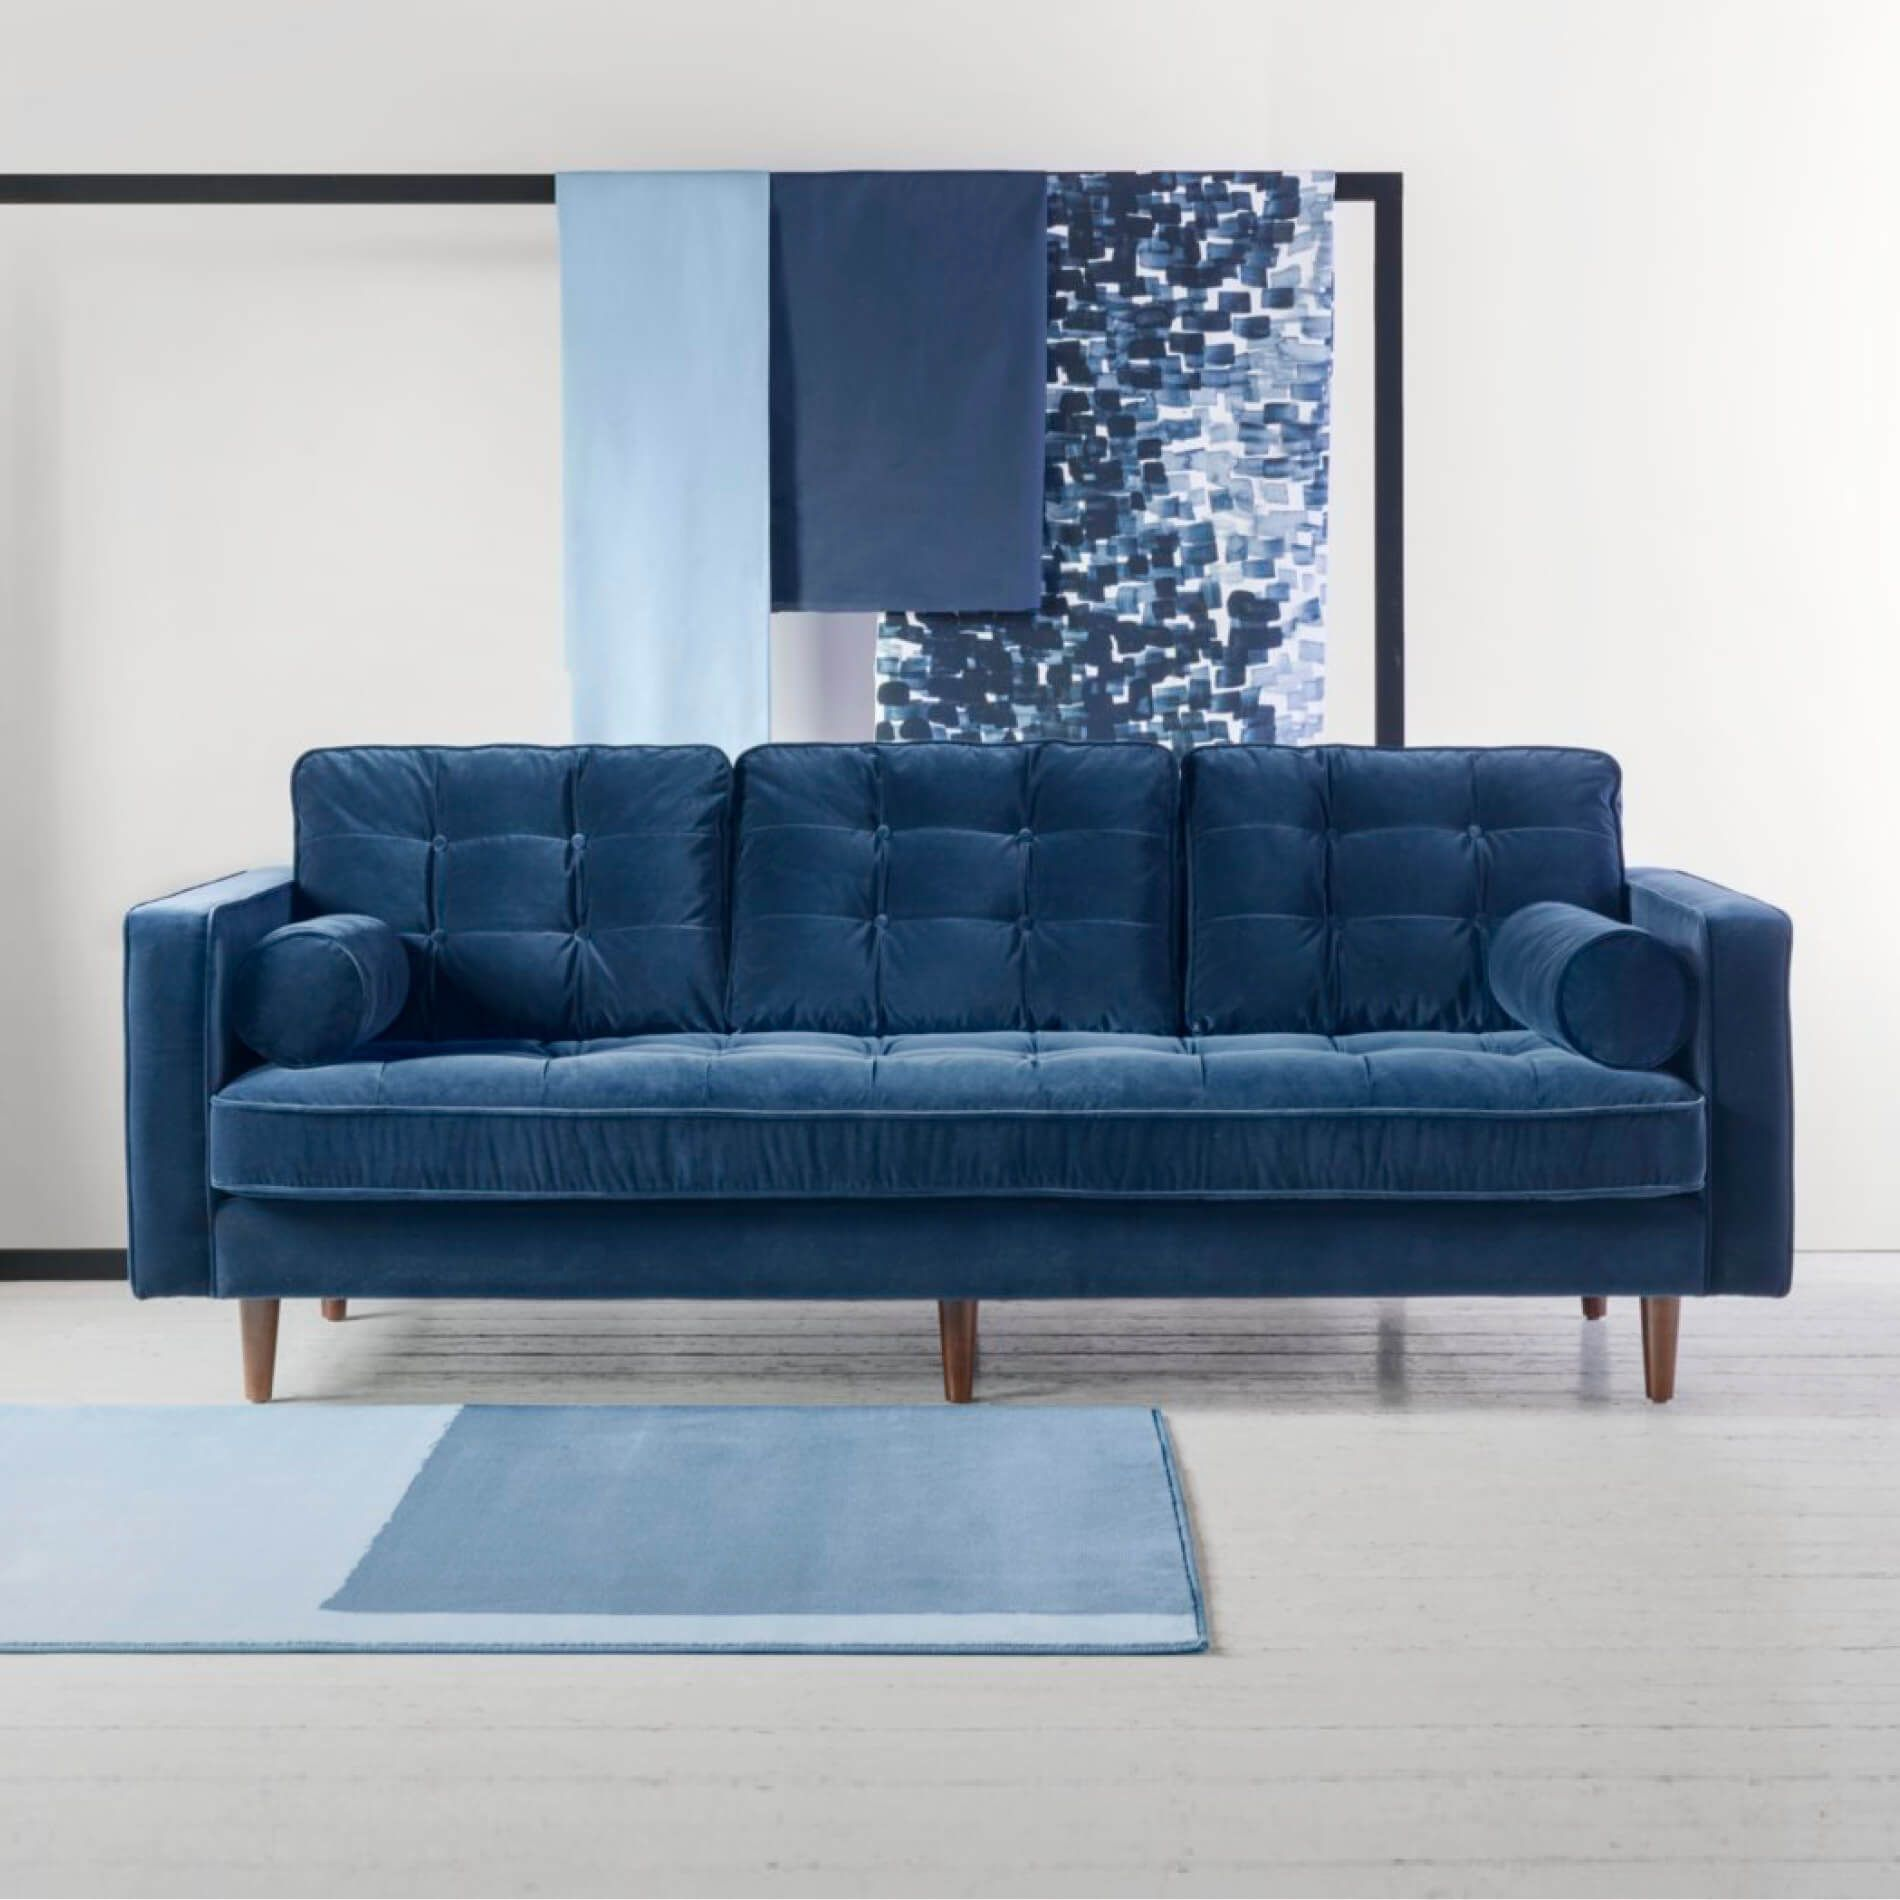 Quick Delivery Sofas In Just 7 Days Sofa Handmade Oversized